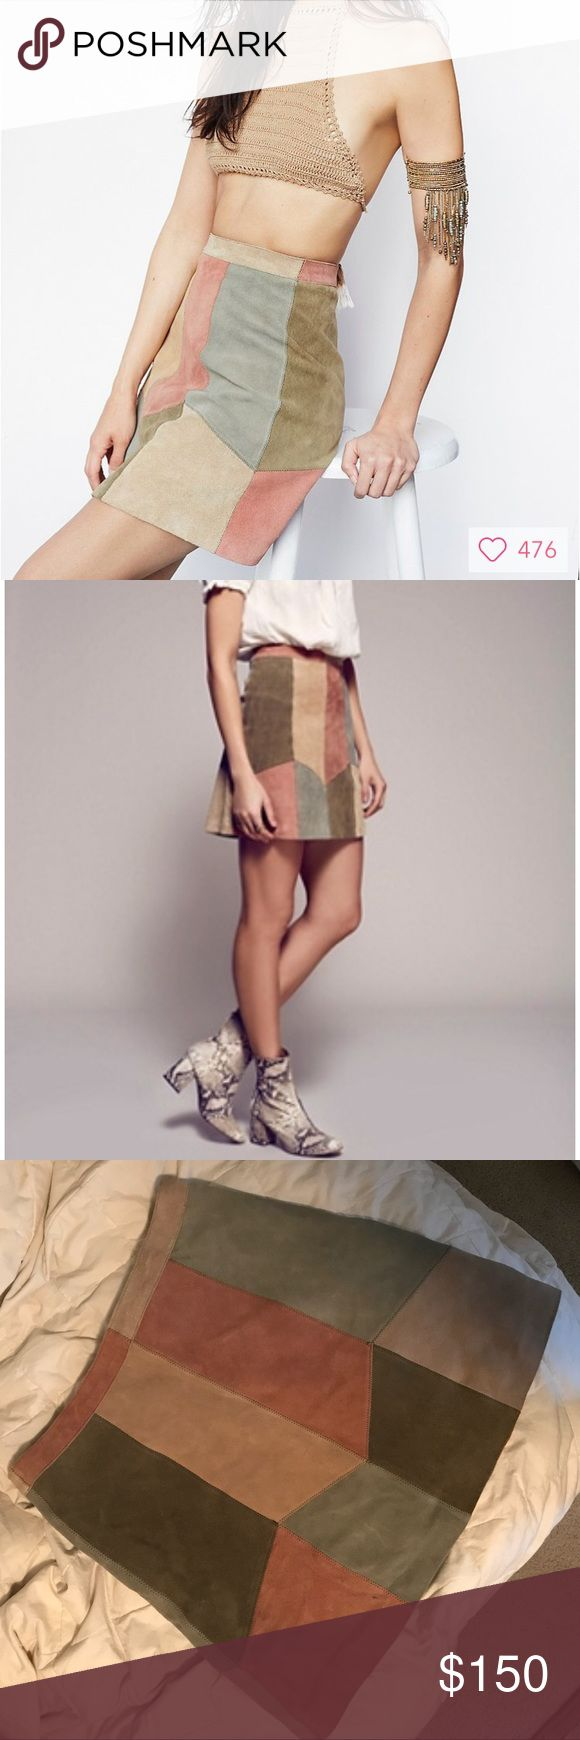 Rare Free People Could Be Us Patchwork Mini Skirt NWOT. Pastel, color blocked suede mini skirt. Like new condition besides a small flaw on bottom left corner of skirt (pictured, but which you cannot see unless you search for it)— I purchased it in this condition. Back zip and clasp closure. Measurements for the size 6 are in the last image. Make an offer. ✨ Free People Skirts Mini